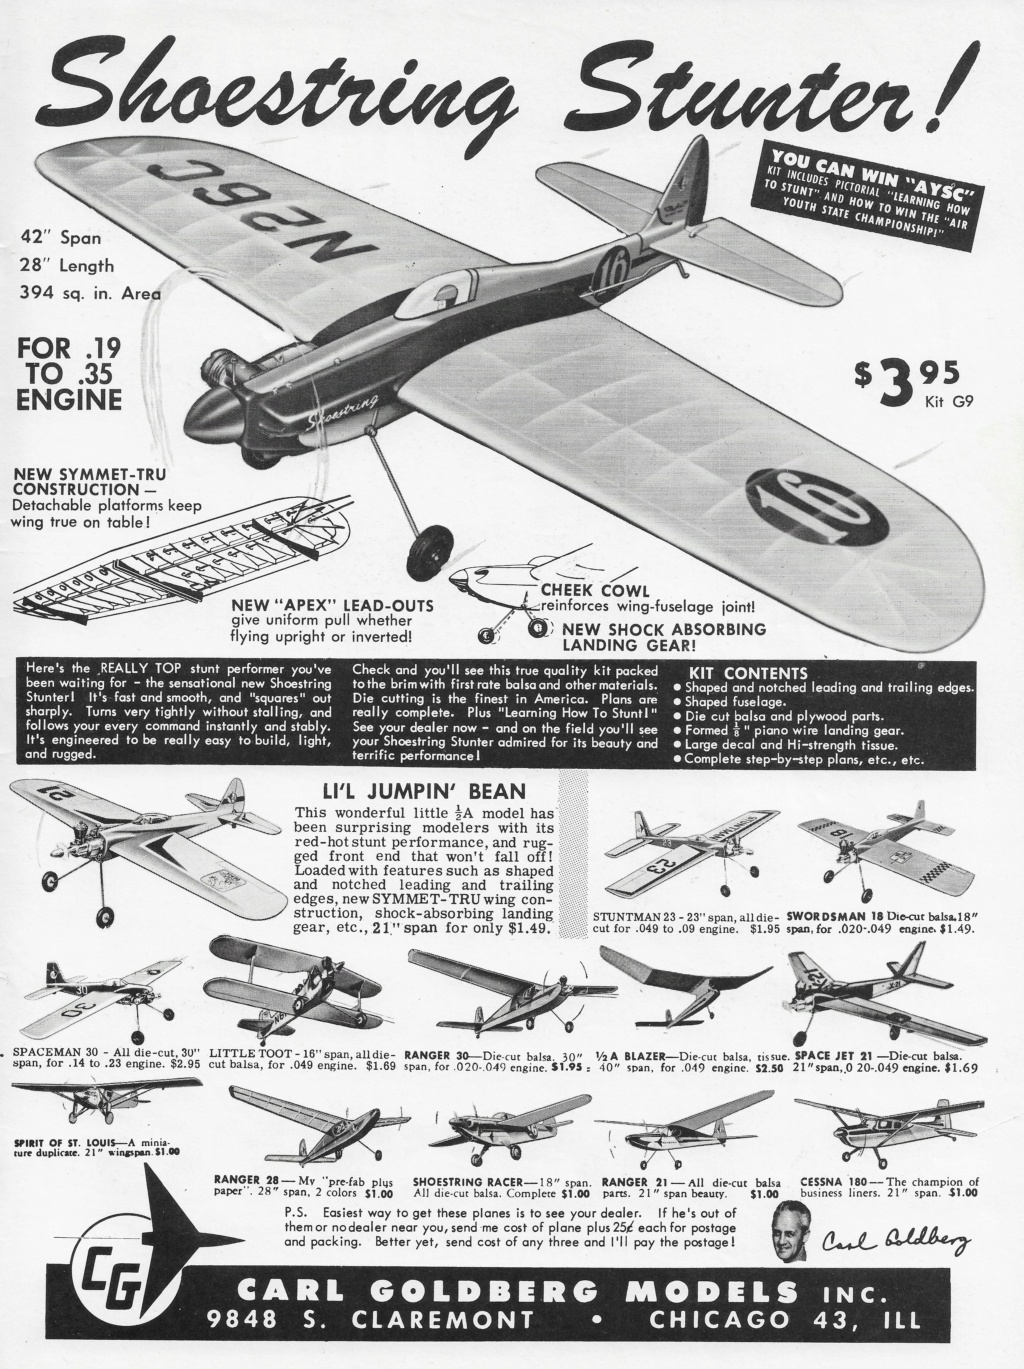 More Rattling from My Facebook Page:  The Carl Goldberg Shoestring Profile Stunter  0_032